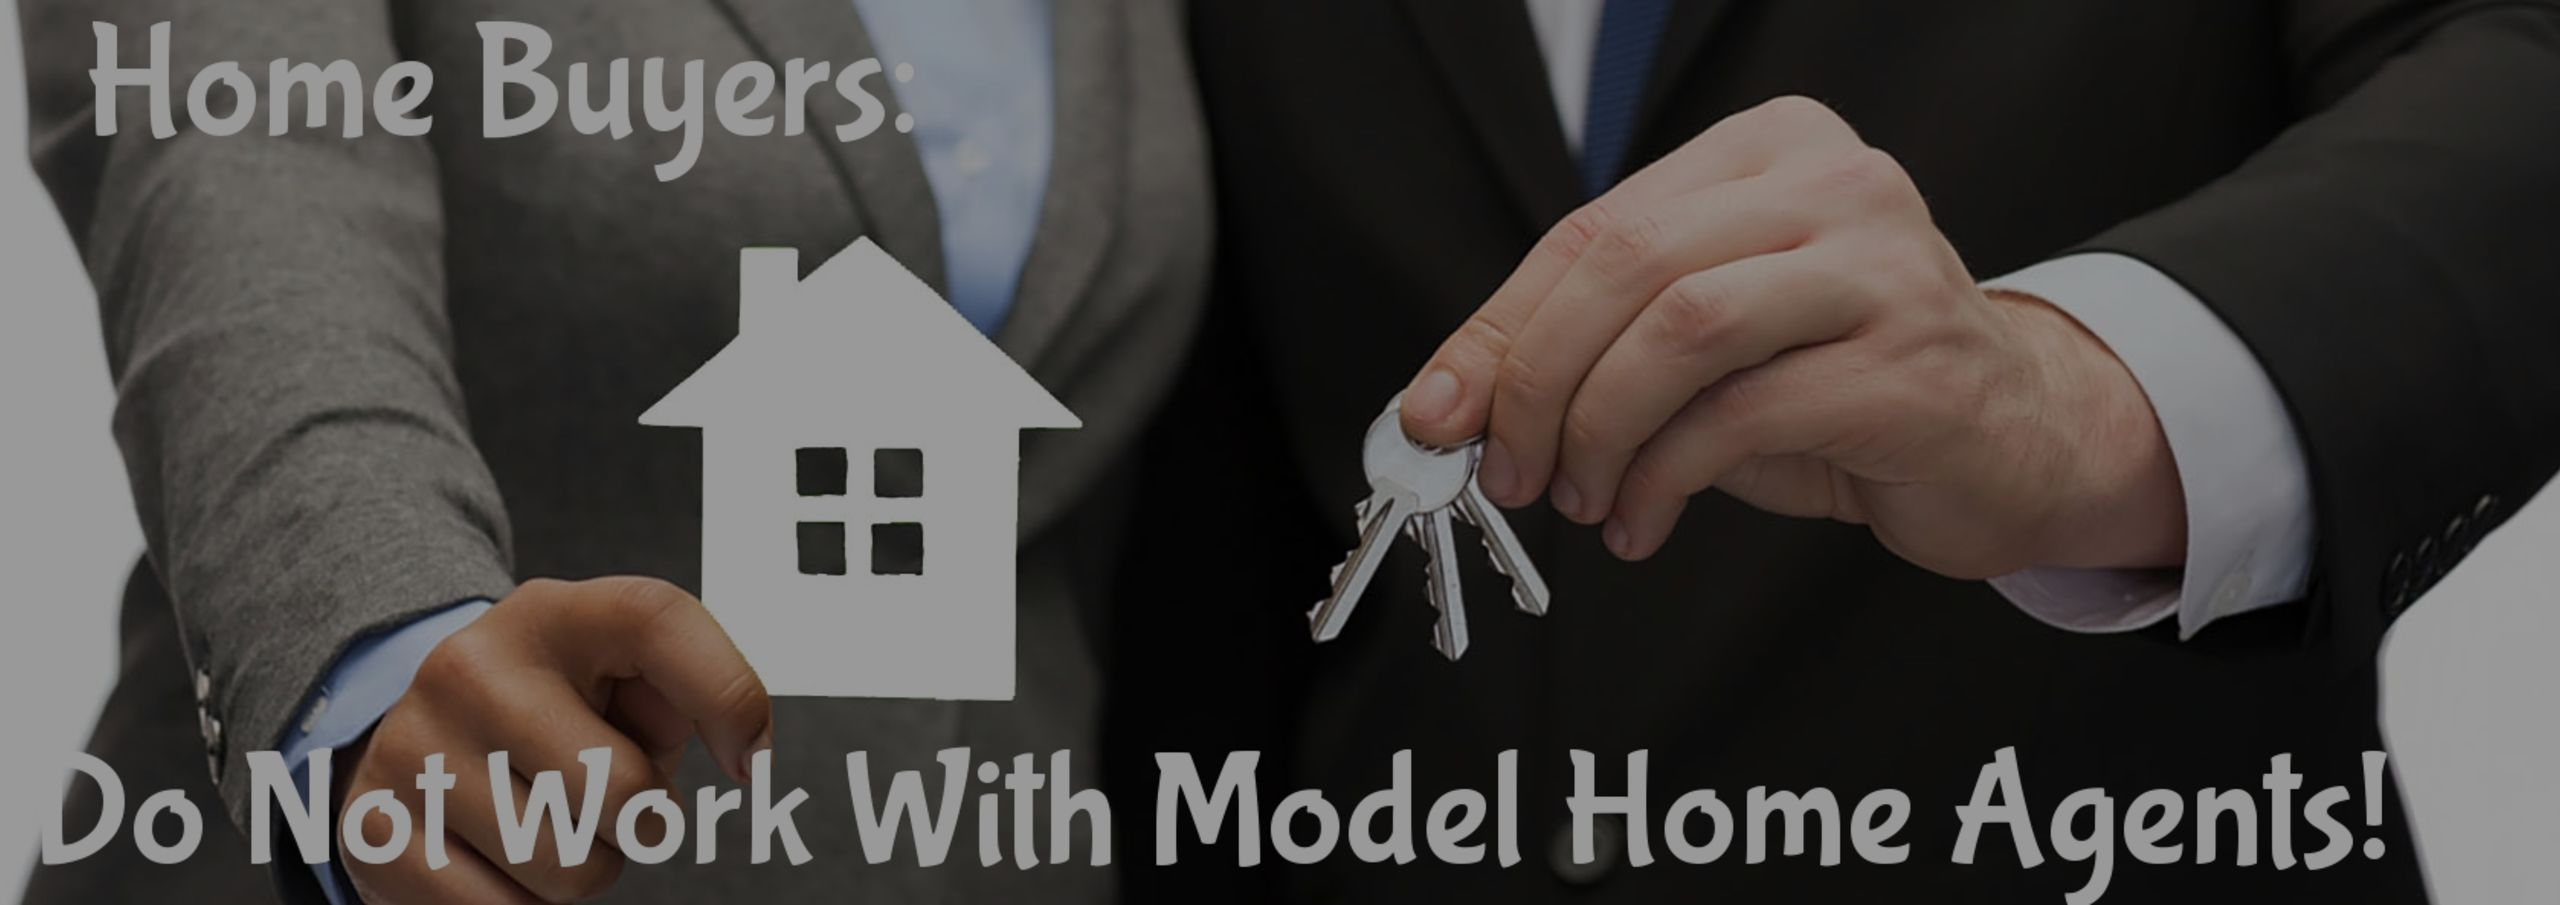 Home Buyers Should Not Work With the Model Home Agent